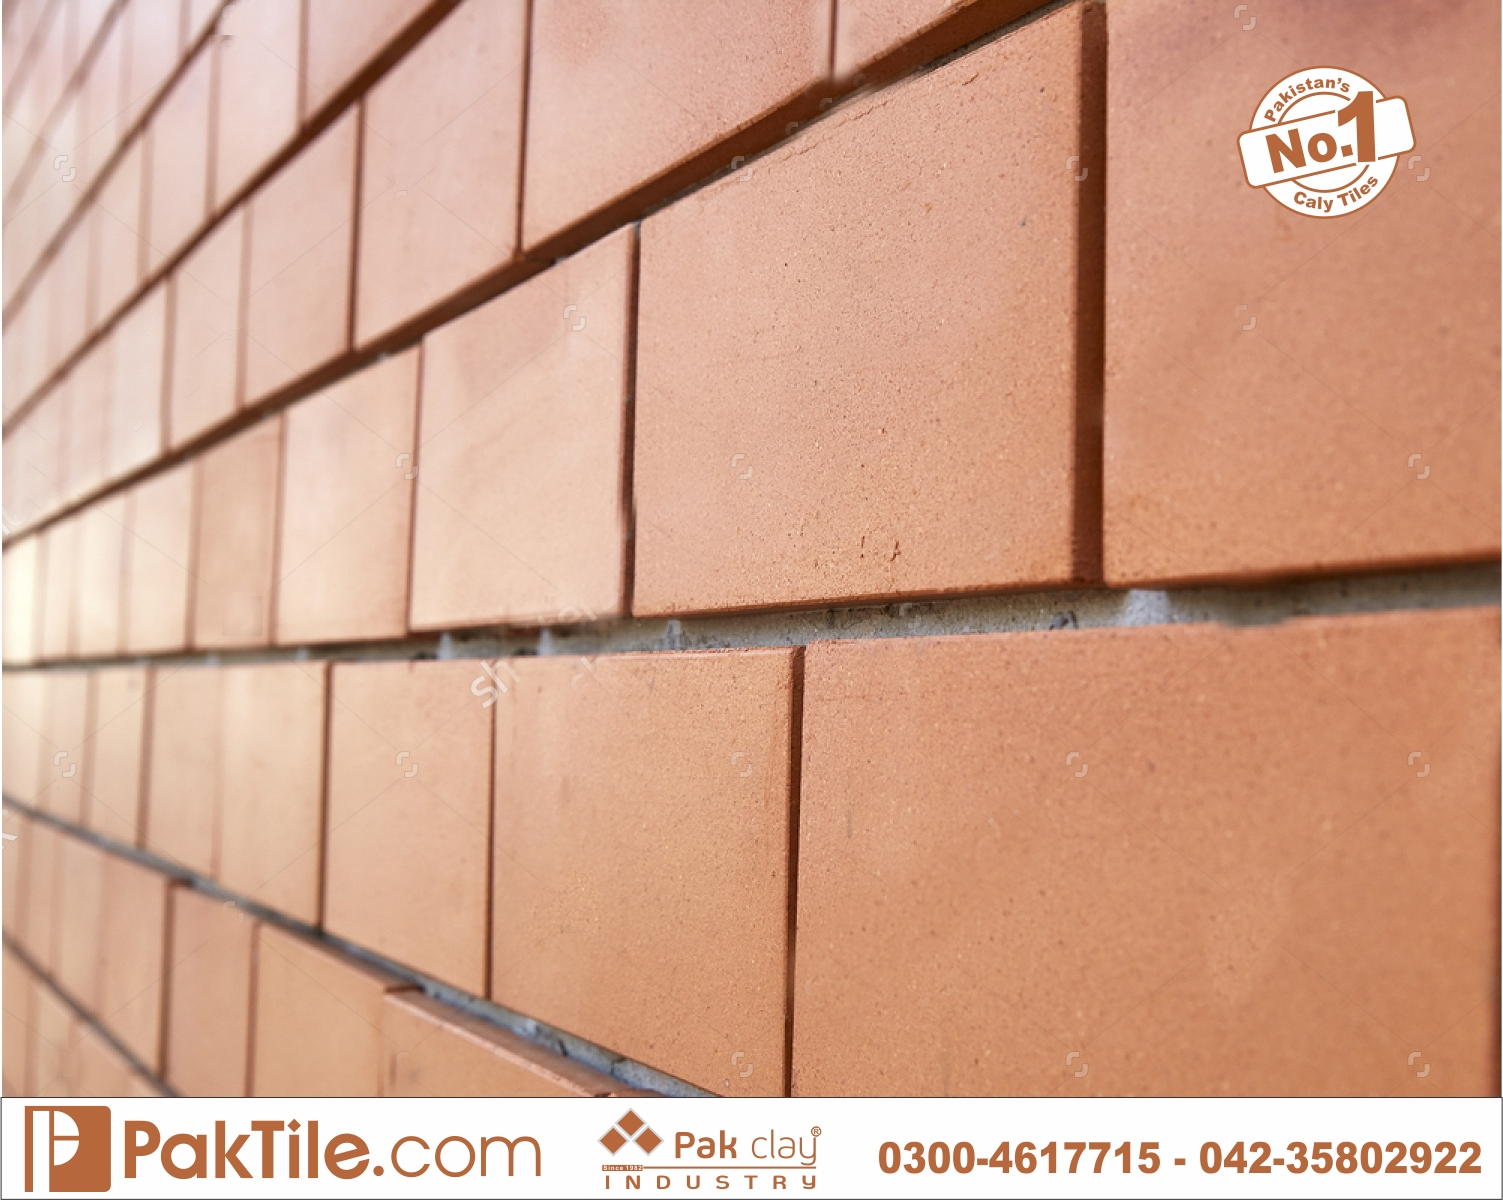 Pak Clay Tiles Industry Lahore House Front Tile Design in Karachi